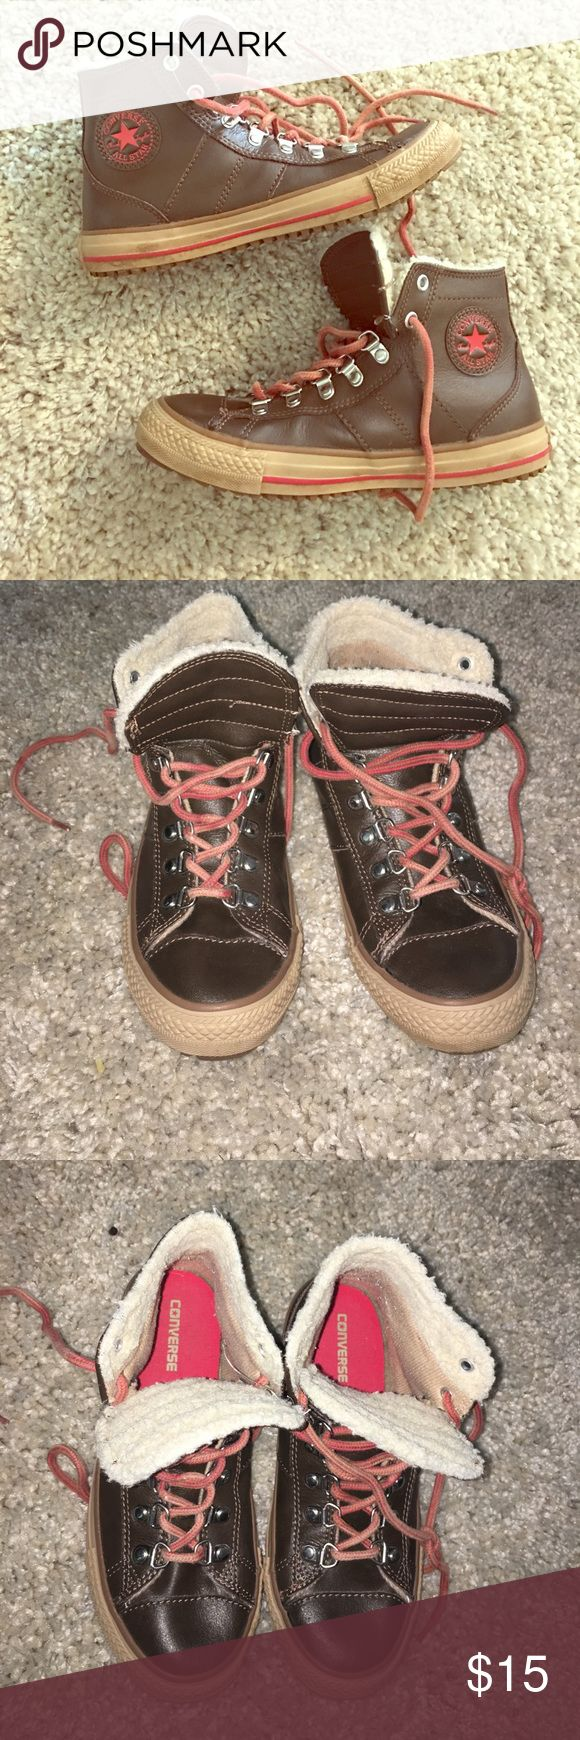 Women's Converse Sneakers These are so cute and different! Brown with red laces and fleece interior. They have that lumberjack boot look in a sneaker form! Which may be weird but I love it! Adorable with cut offs and a flannel. perfect condition! Converse All Star ⭐️ Converse Shoes Sneakers